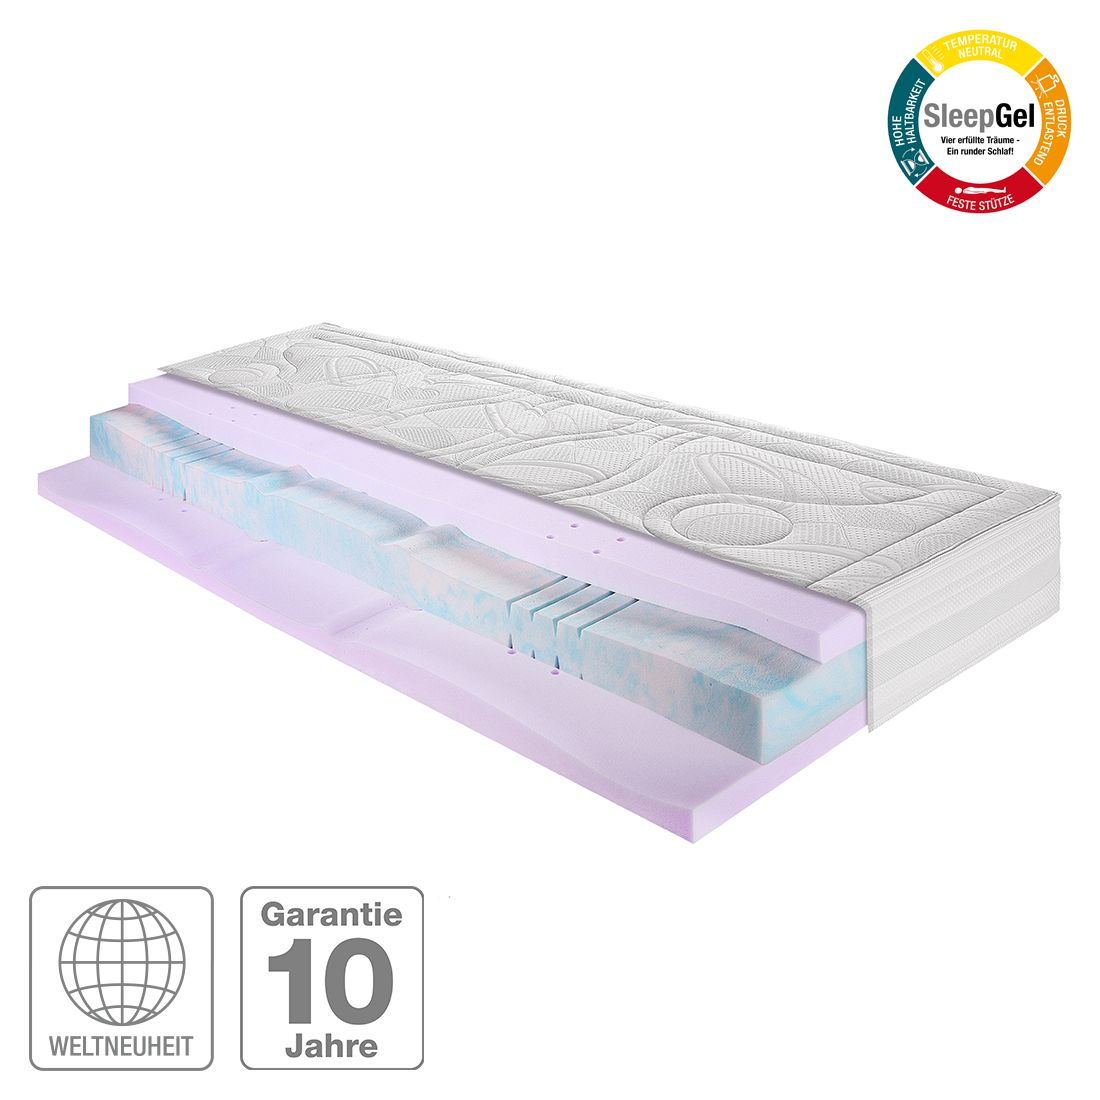 7-Zonen Bodyform-Kaltschaum Gel-Matratze Sleep Gel 5 – 160 x 200cm – H2 bis 80 kg, Breckle günstig